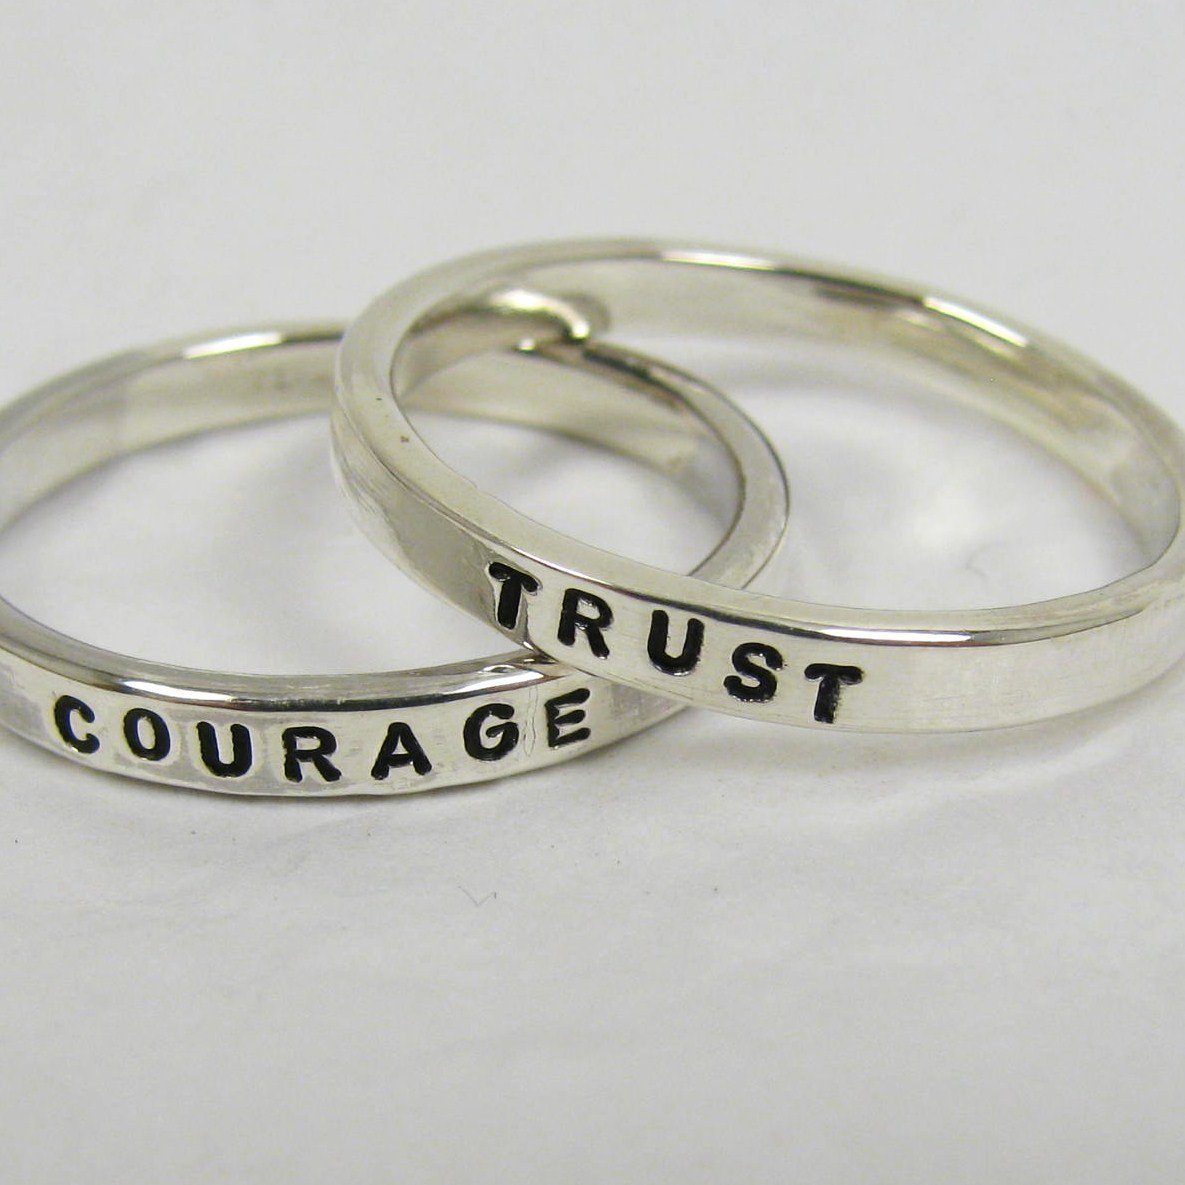 Personalized Sterling Silver Stacking Rings, Custom Names, Dates, Message Stackable Rings, Set of 2 - 2.4 mm wide each.